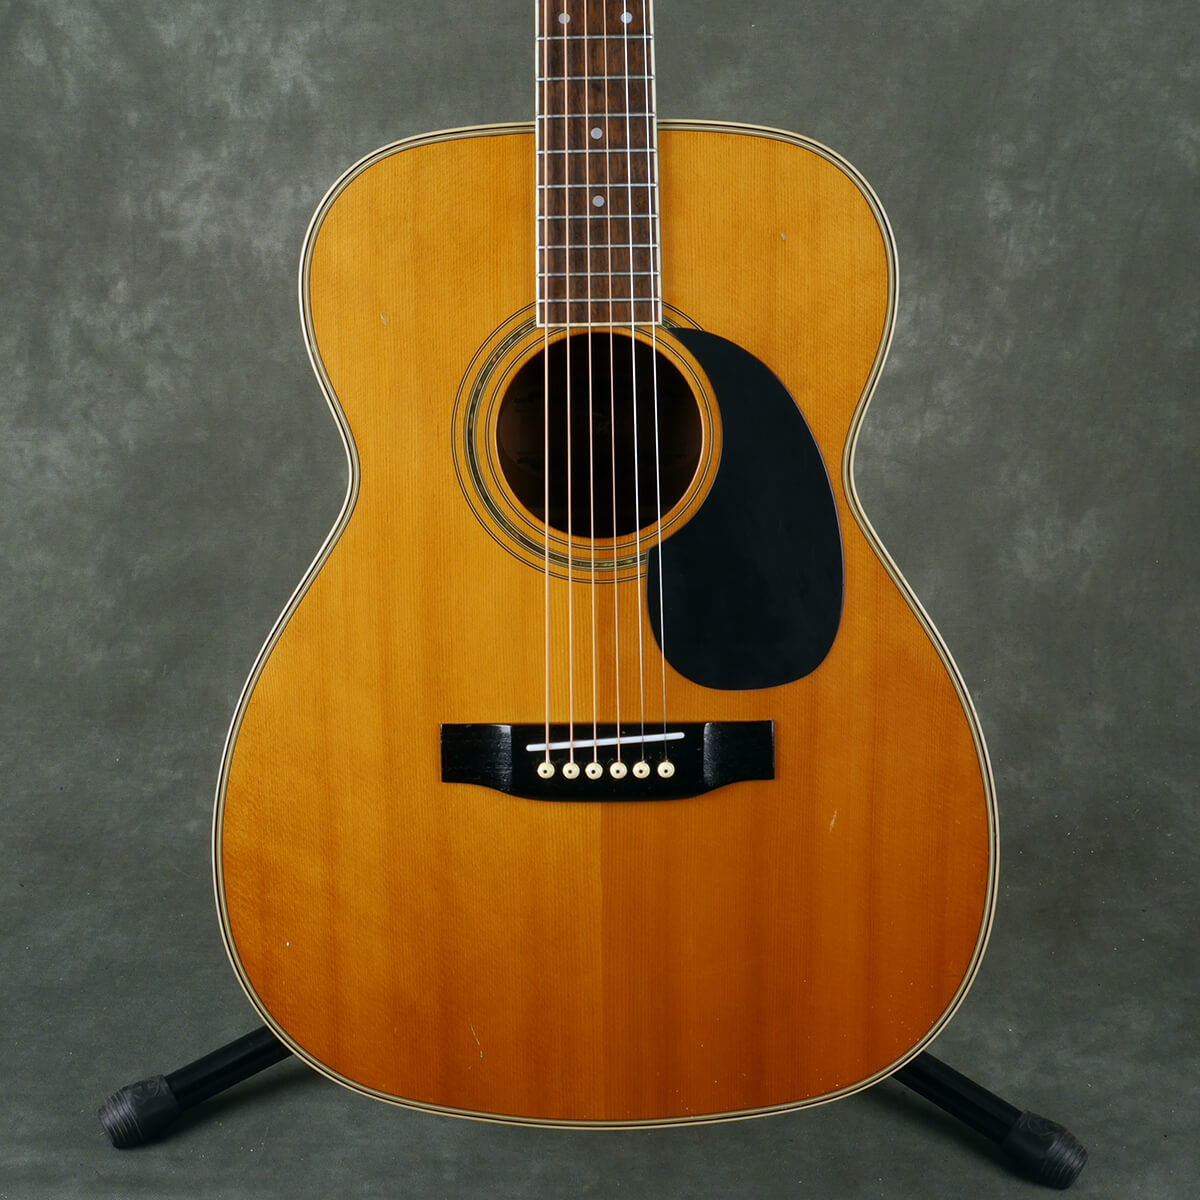 Fenix 1980s F90M Acoustic Guitar - Natural - 2nd Hand